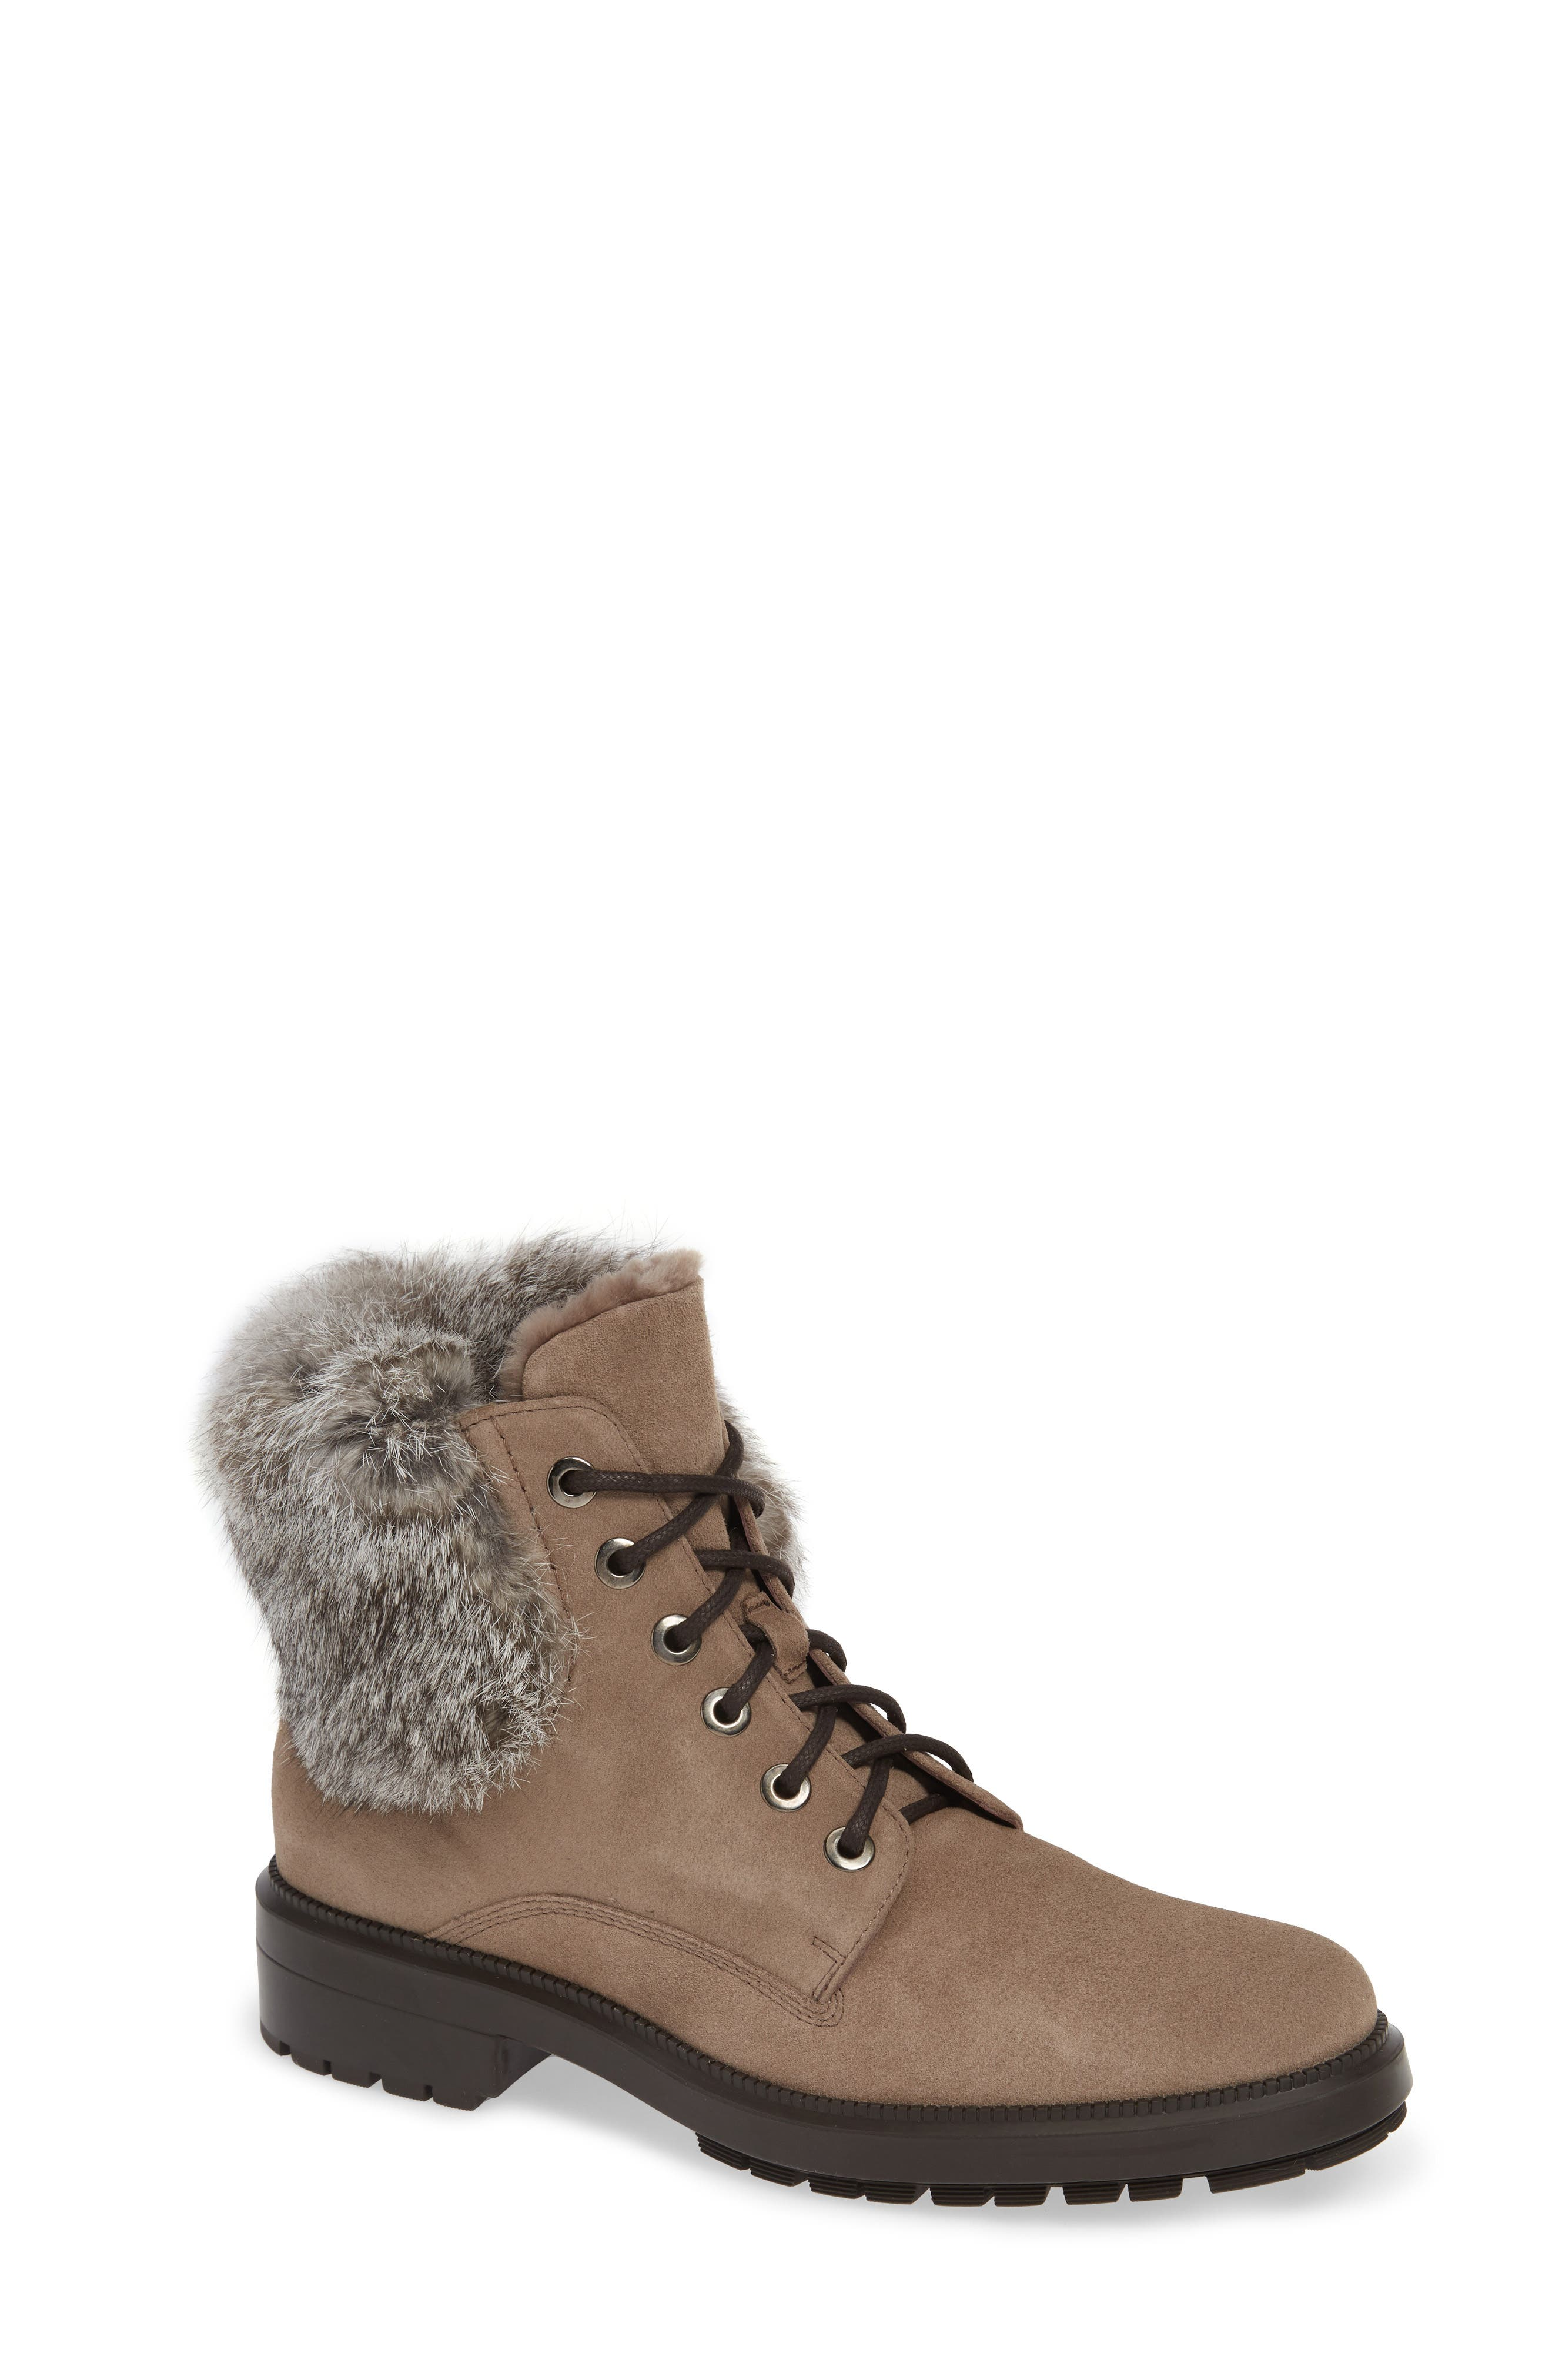 Lacy Genuine Shearling Lined Boot With Genuine Rabbit Fur Trim in Taupe